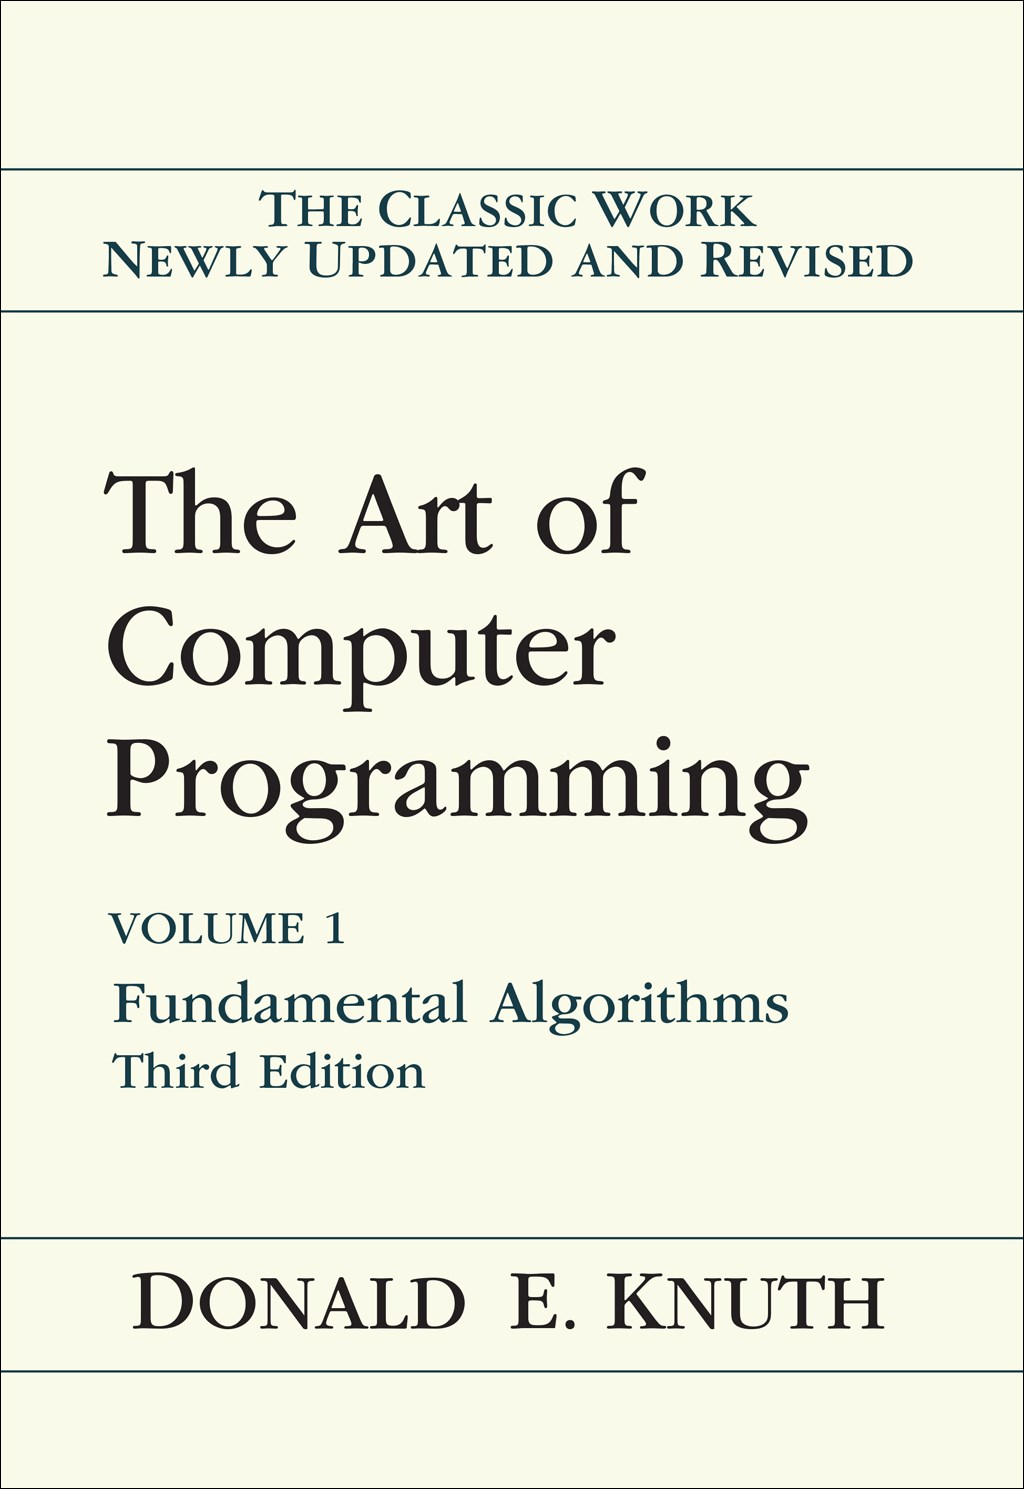 Art of Computer Programming, The: Volume 1: Fundamental Algorithms, 3rd Edition